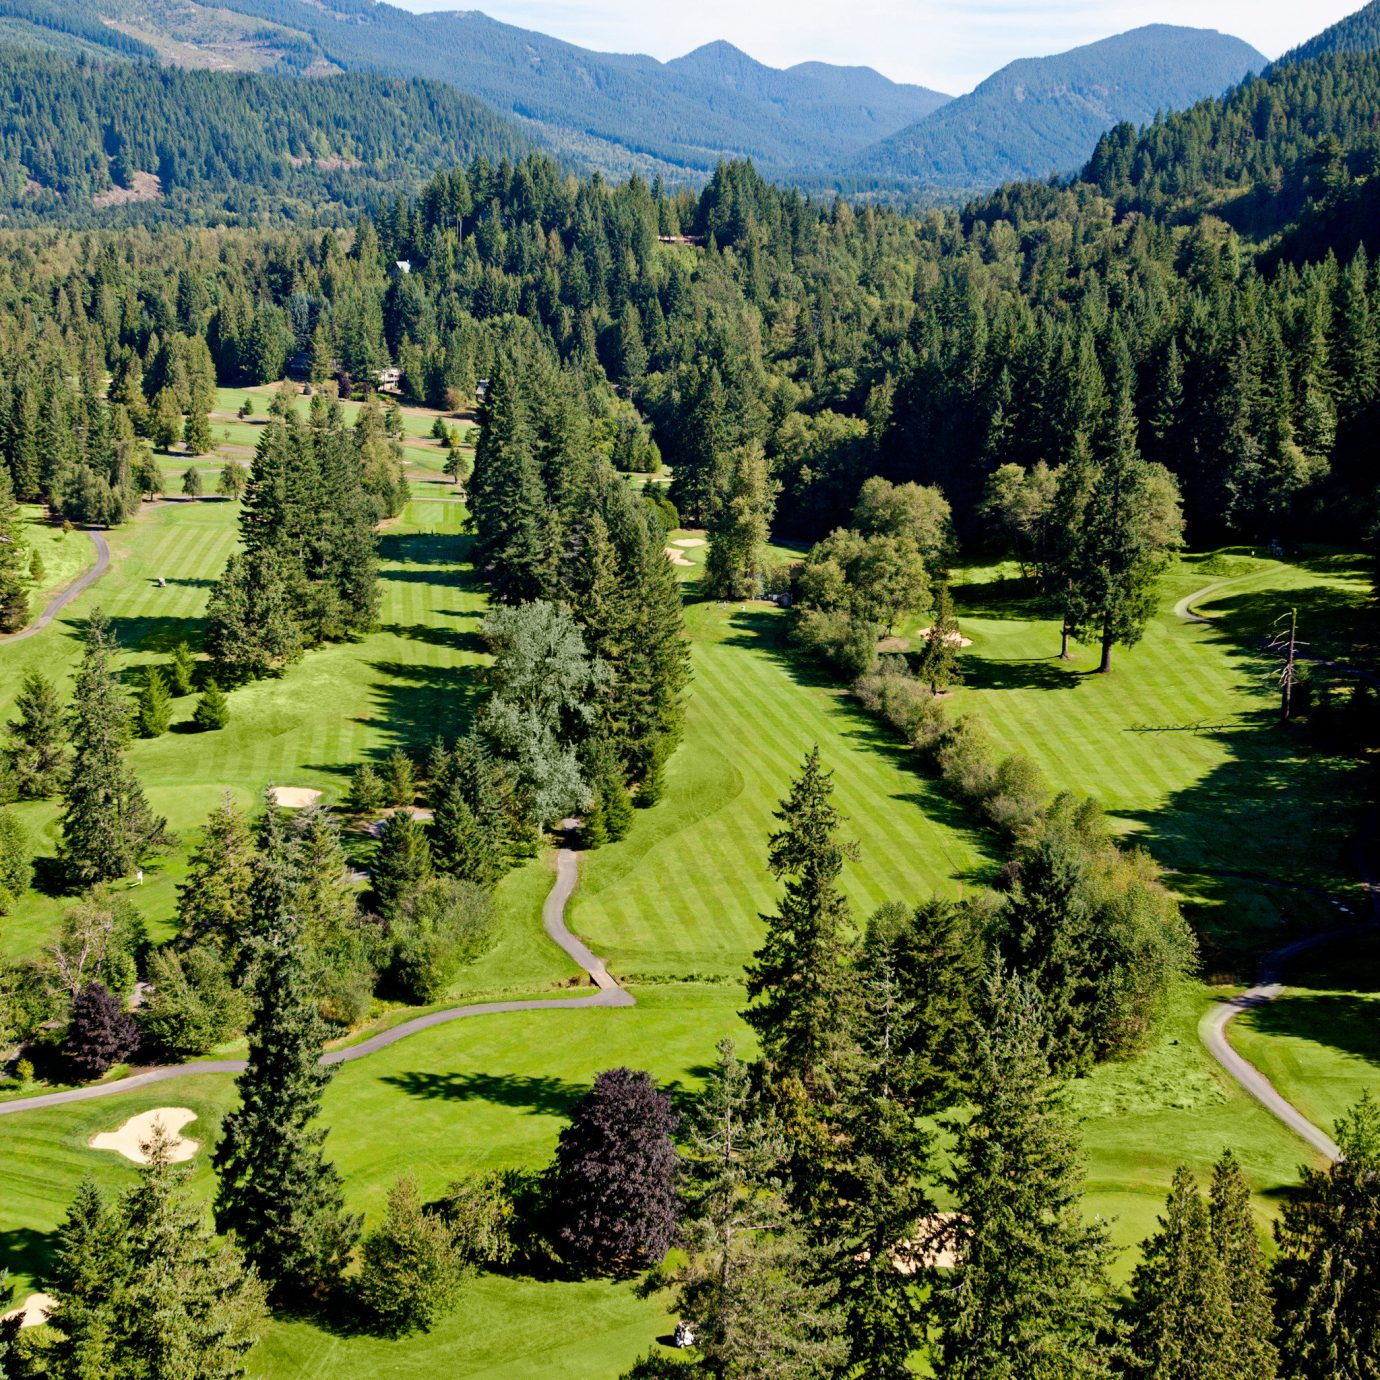 Forest Mountains Natural wonders Nature Outdoor Activities Outdoors Scenic views tree mountain grass ecosystem aerial photography mountain range valley green biome lush temperate coniferous forest plateau plant meadow conifer hillside wooded surrounded